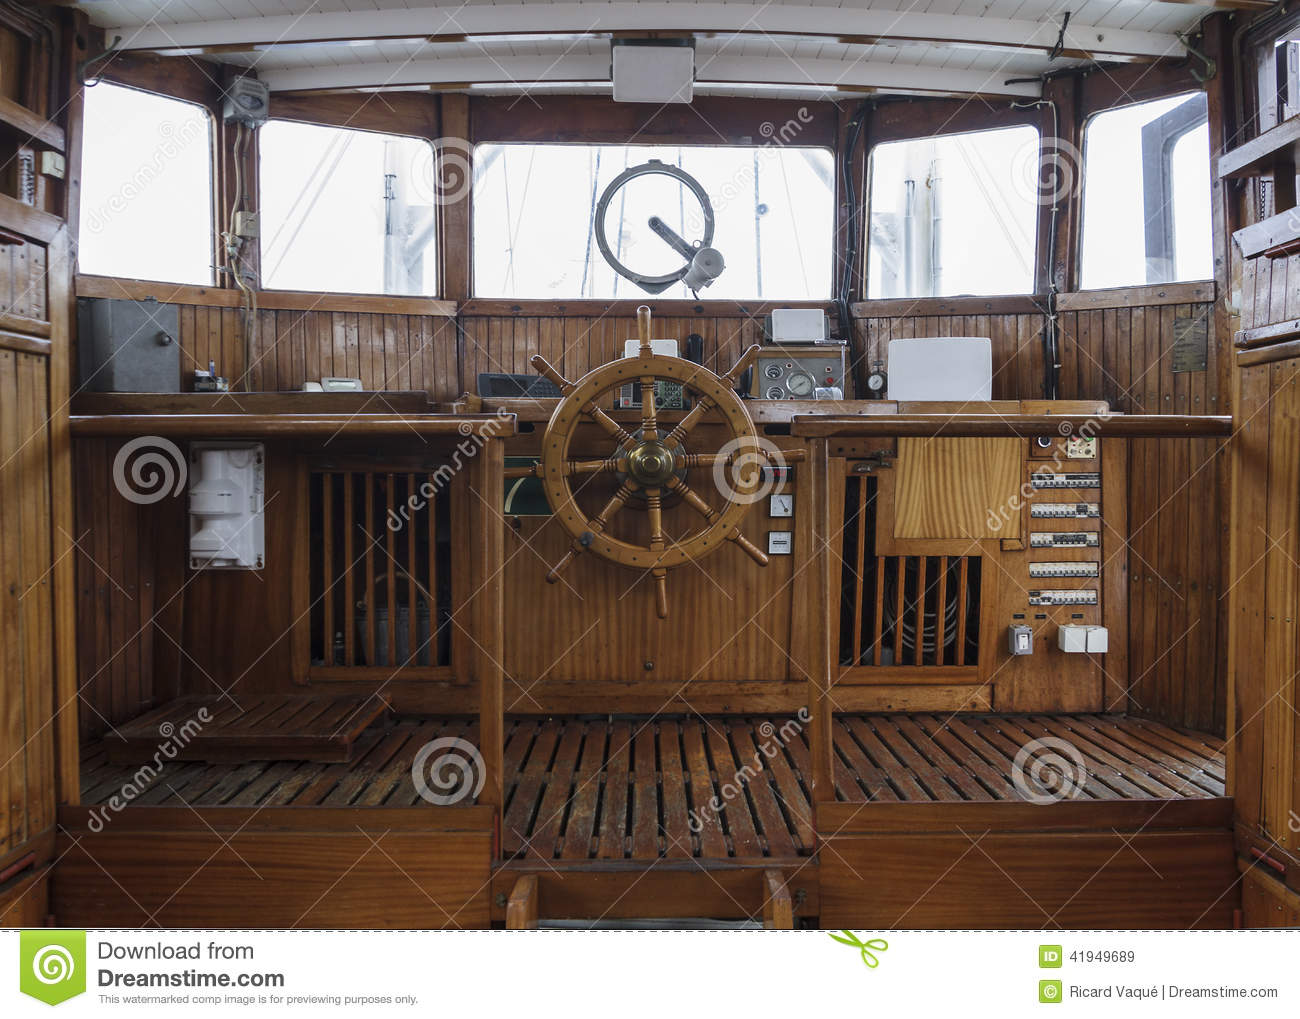 Wheelhouse Of And Historic Ship Stock Image - Image: 41949689